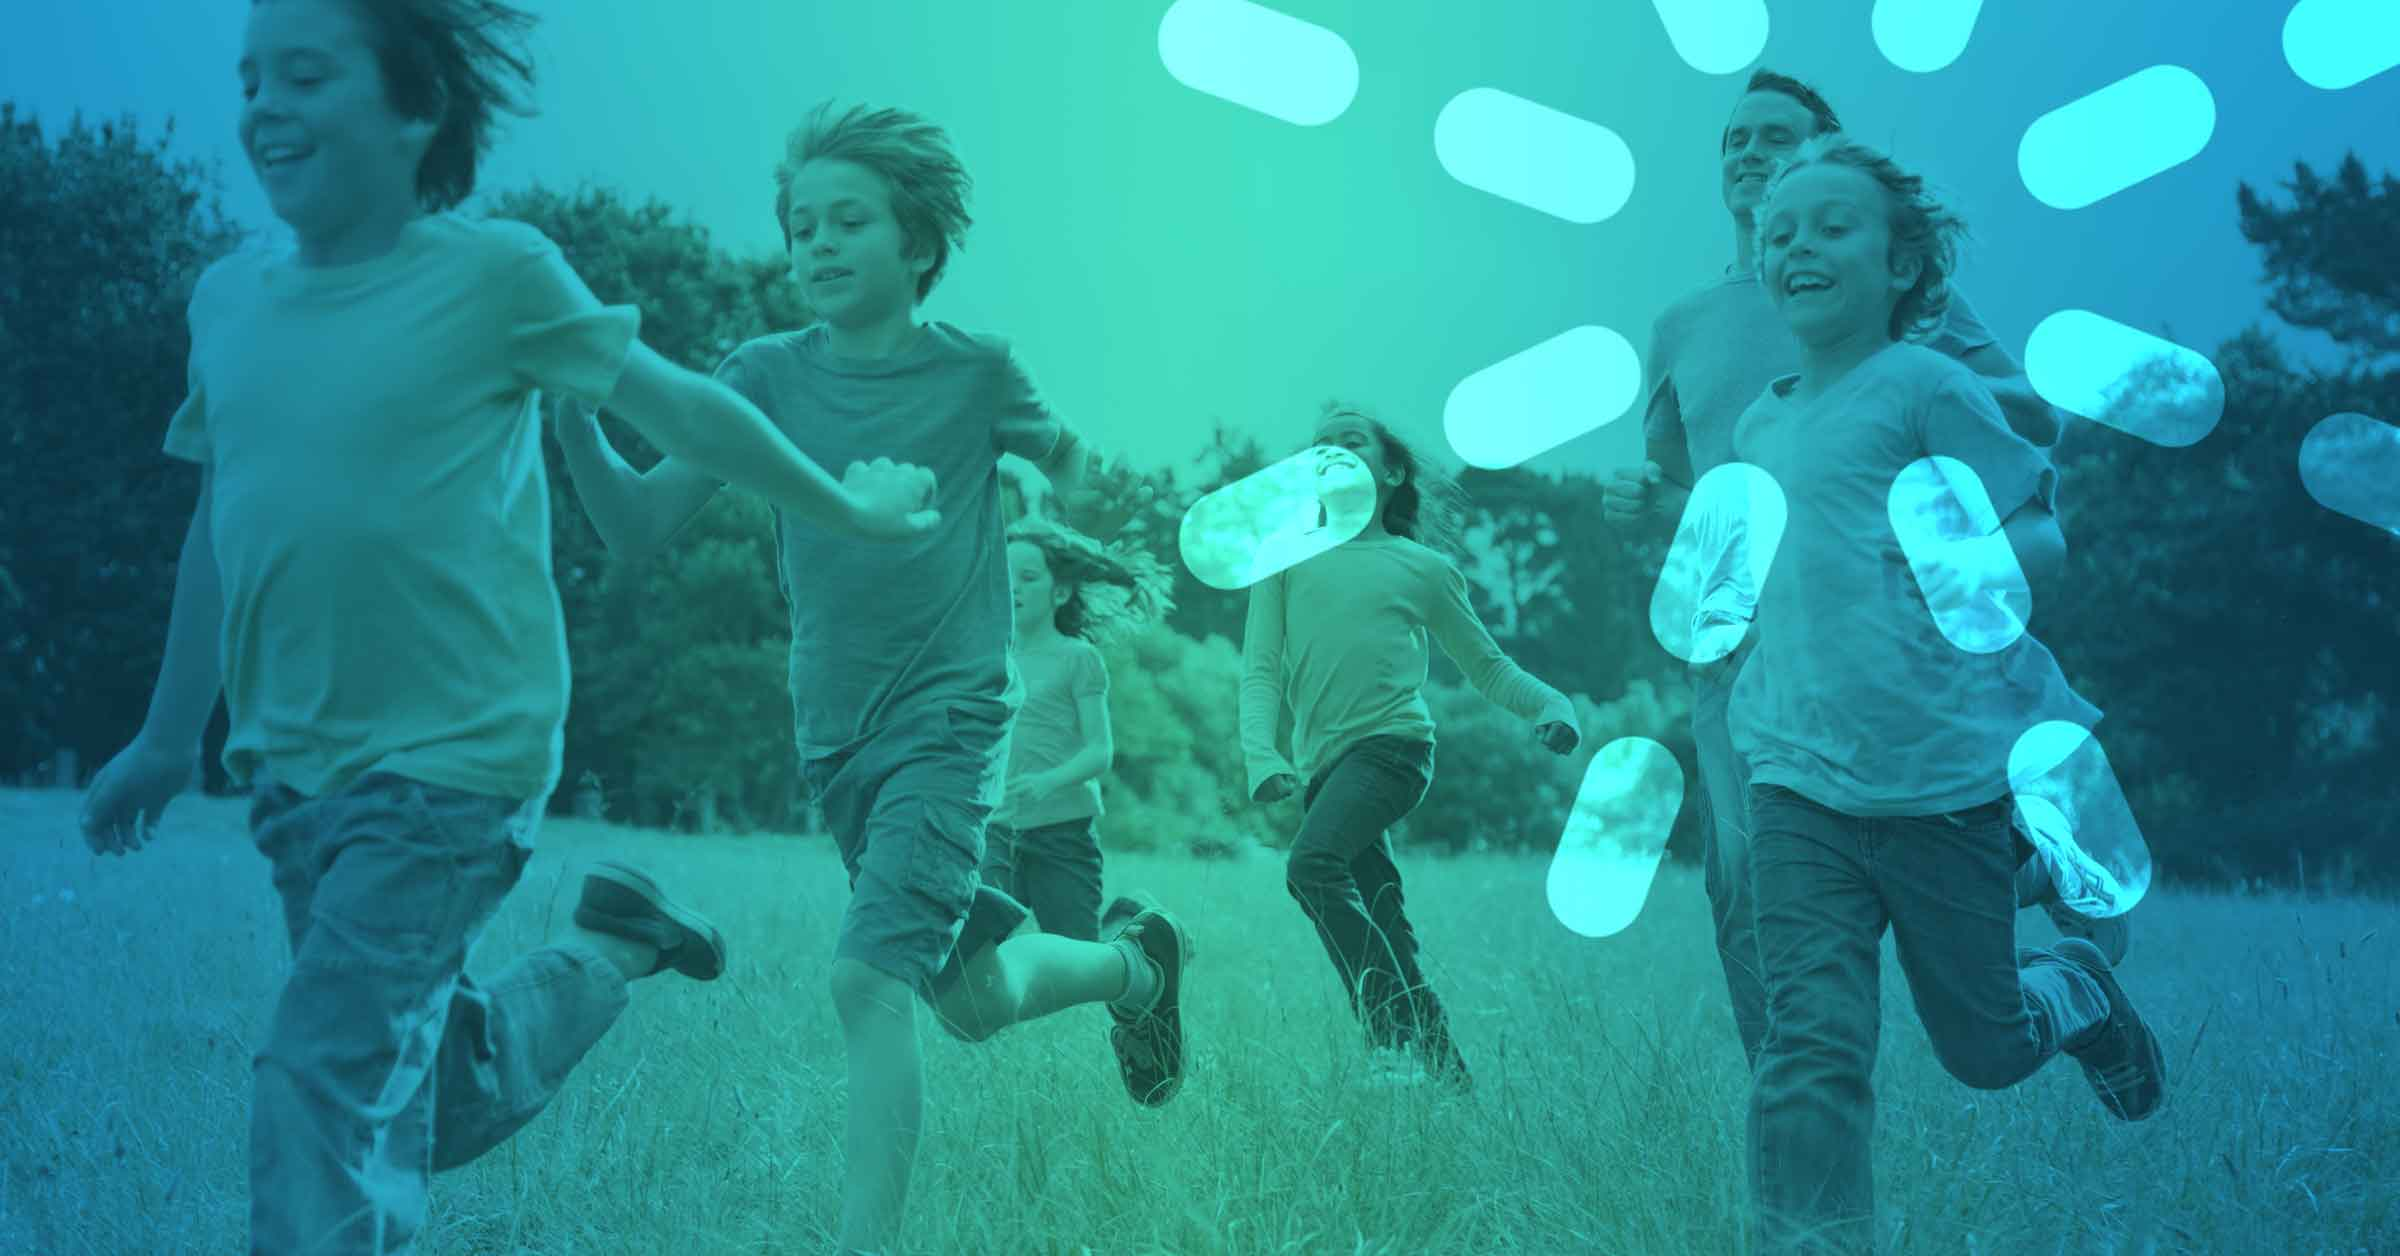 See how to energize children's ministry